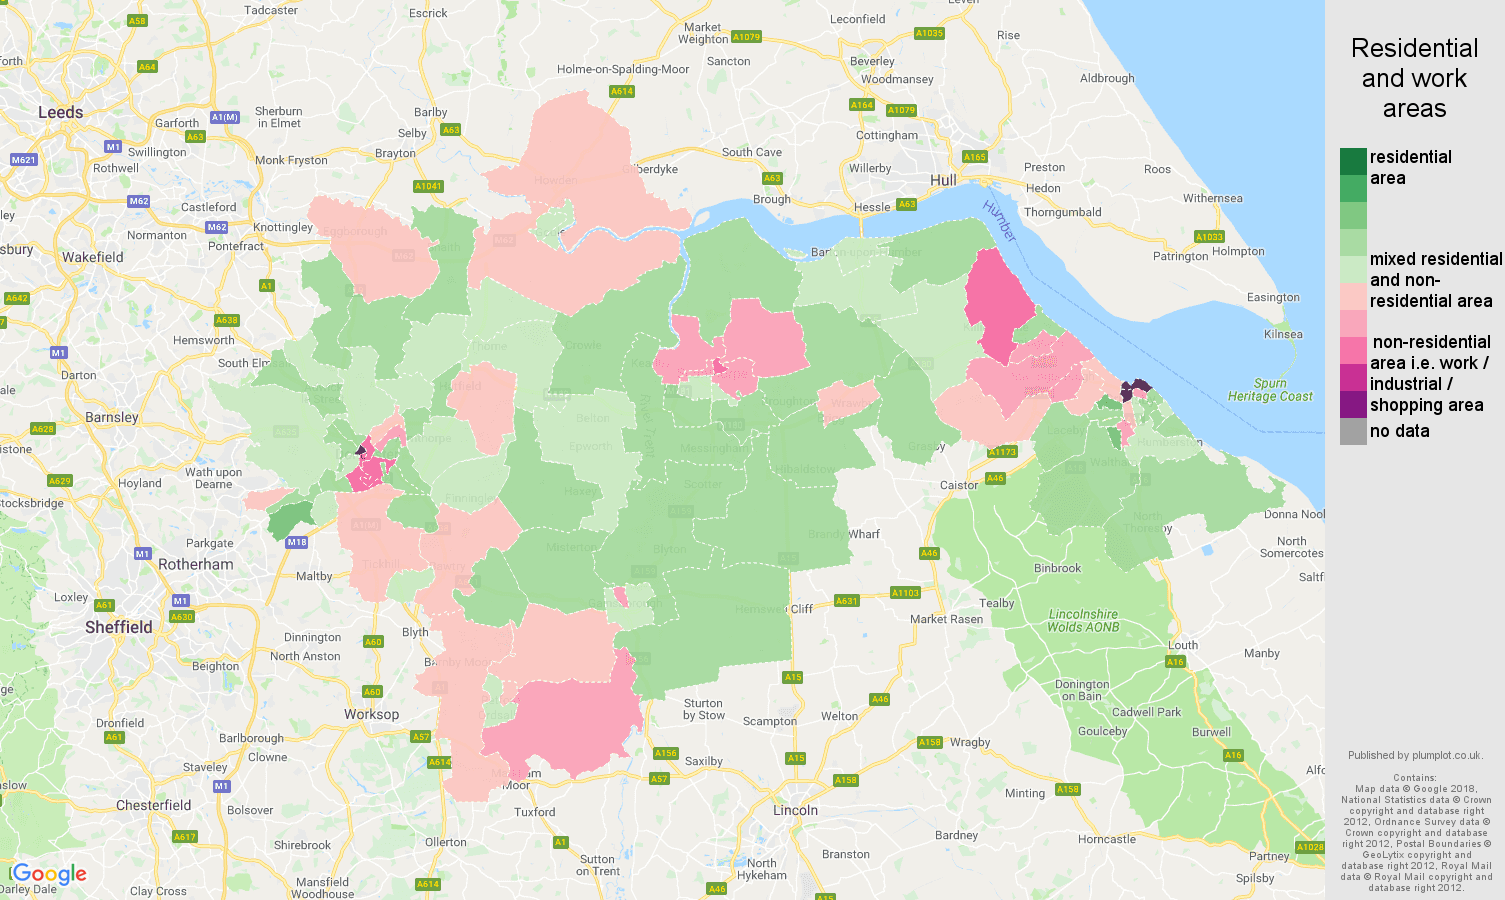 Doncaster residential areas map